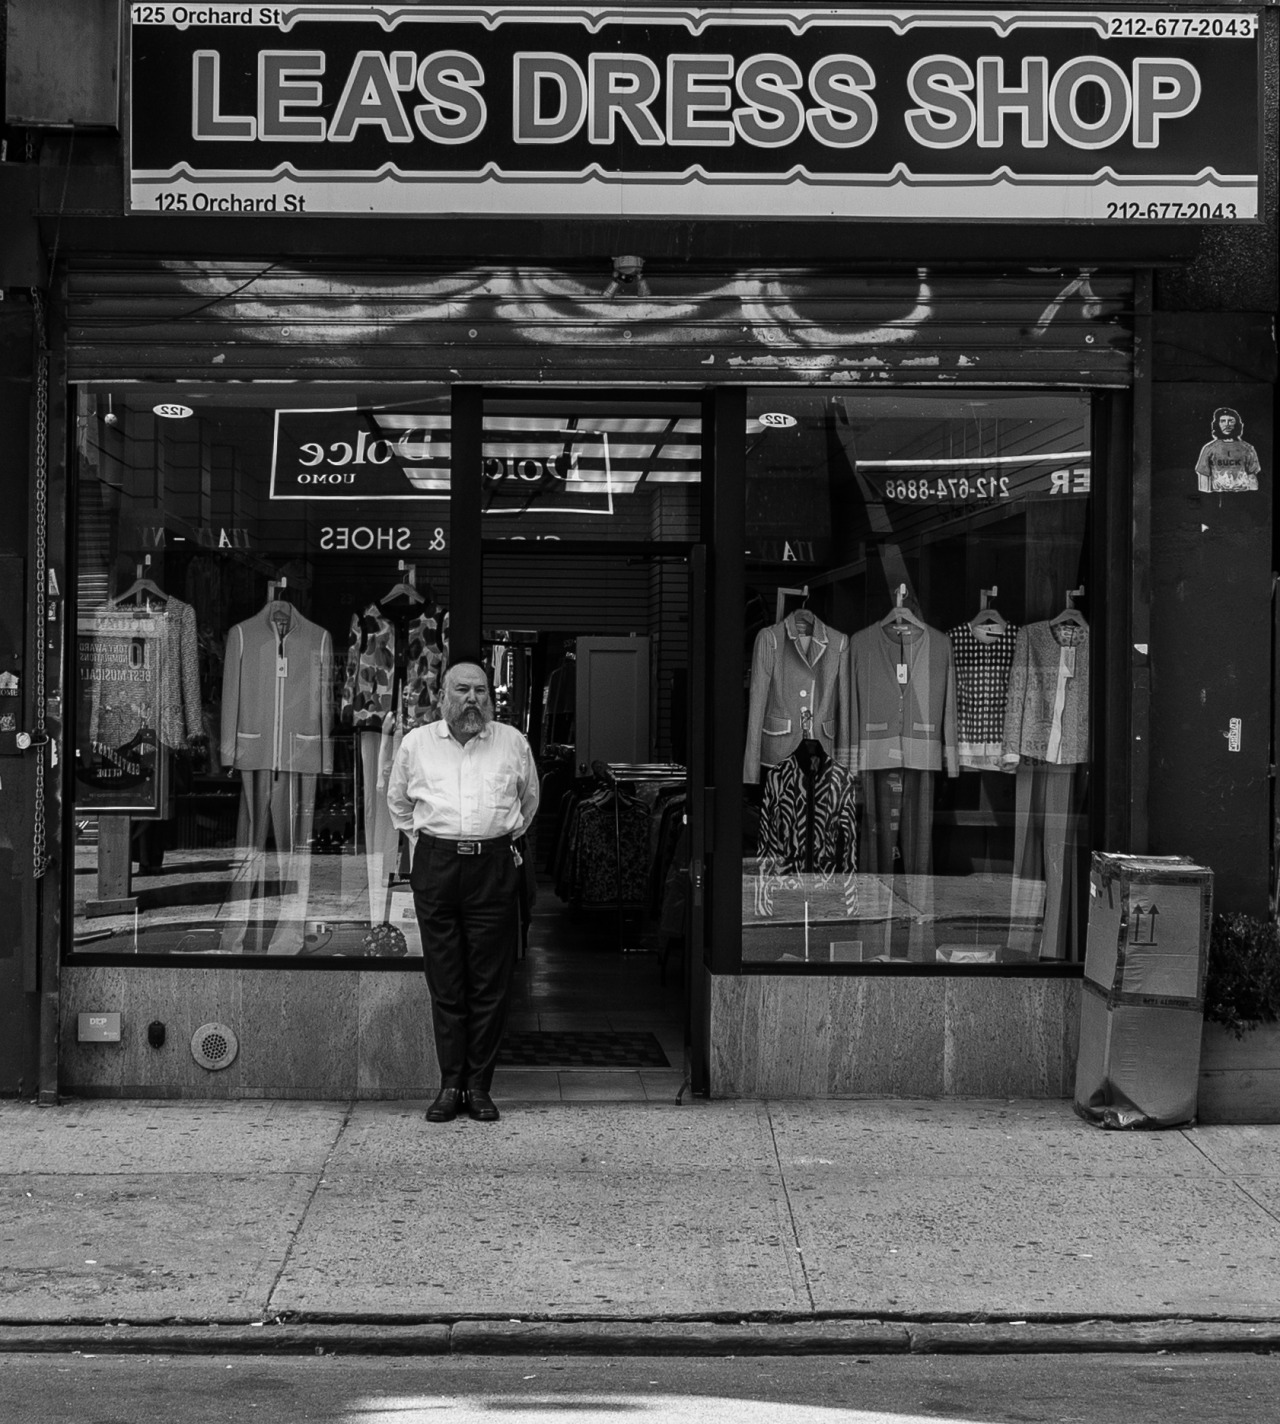 Lea's Dress Shop    www.willoharephotography.com